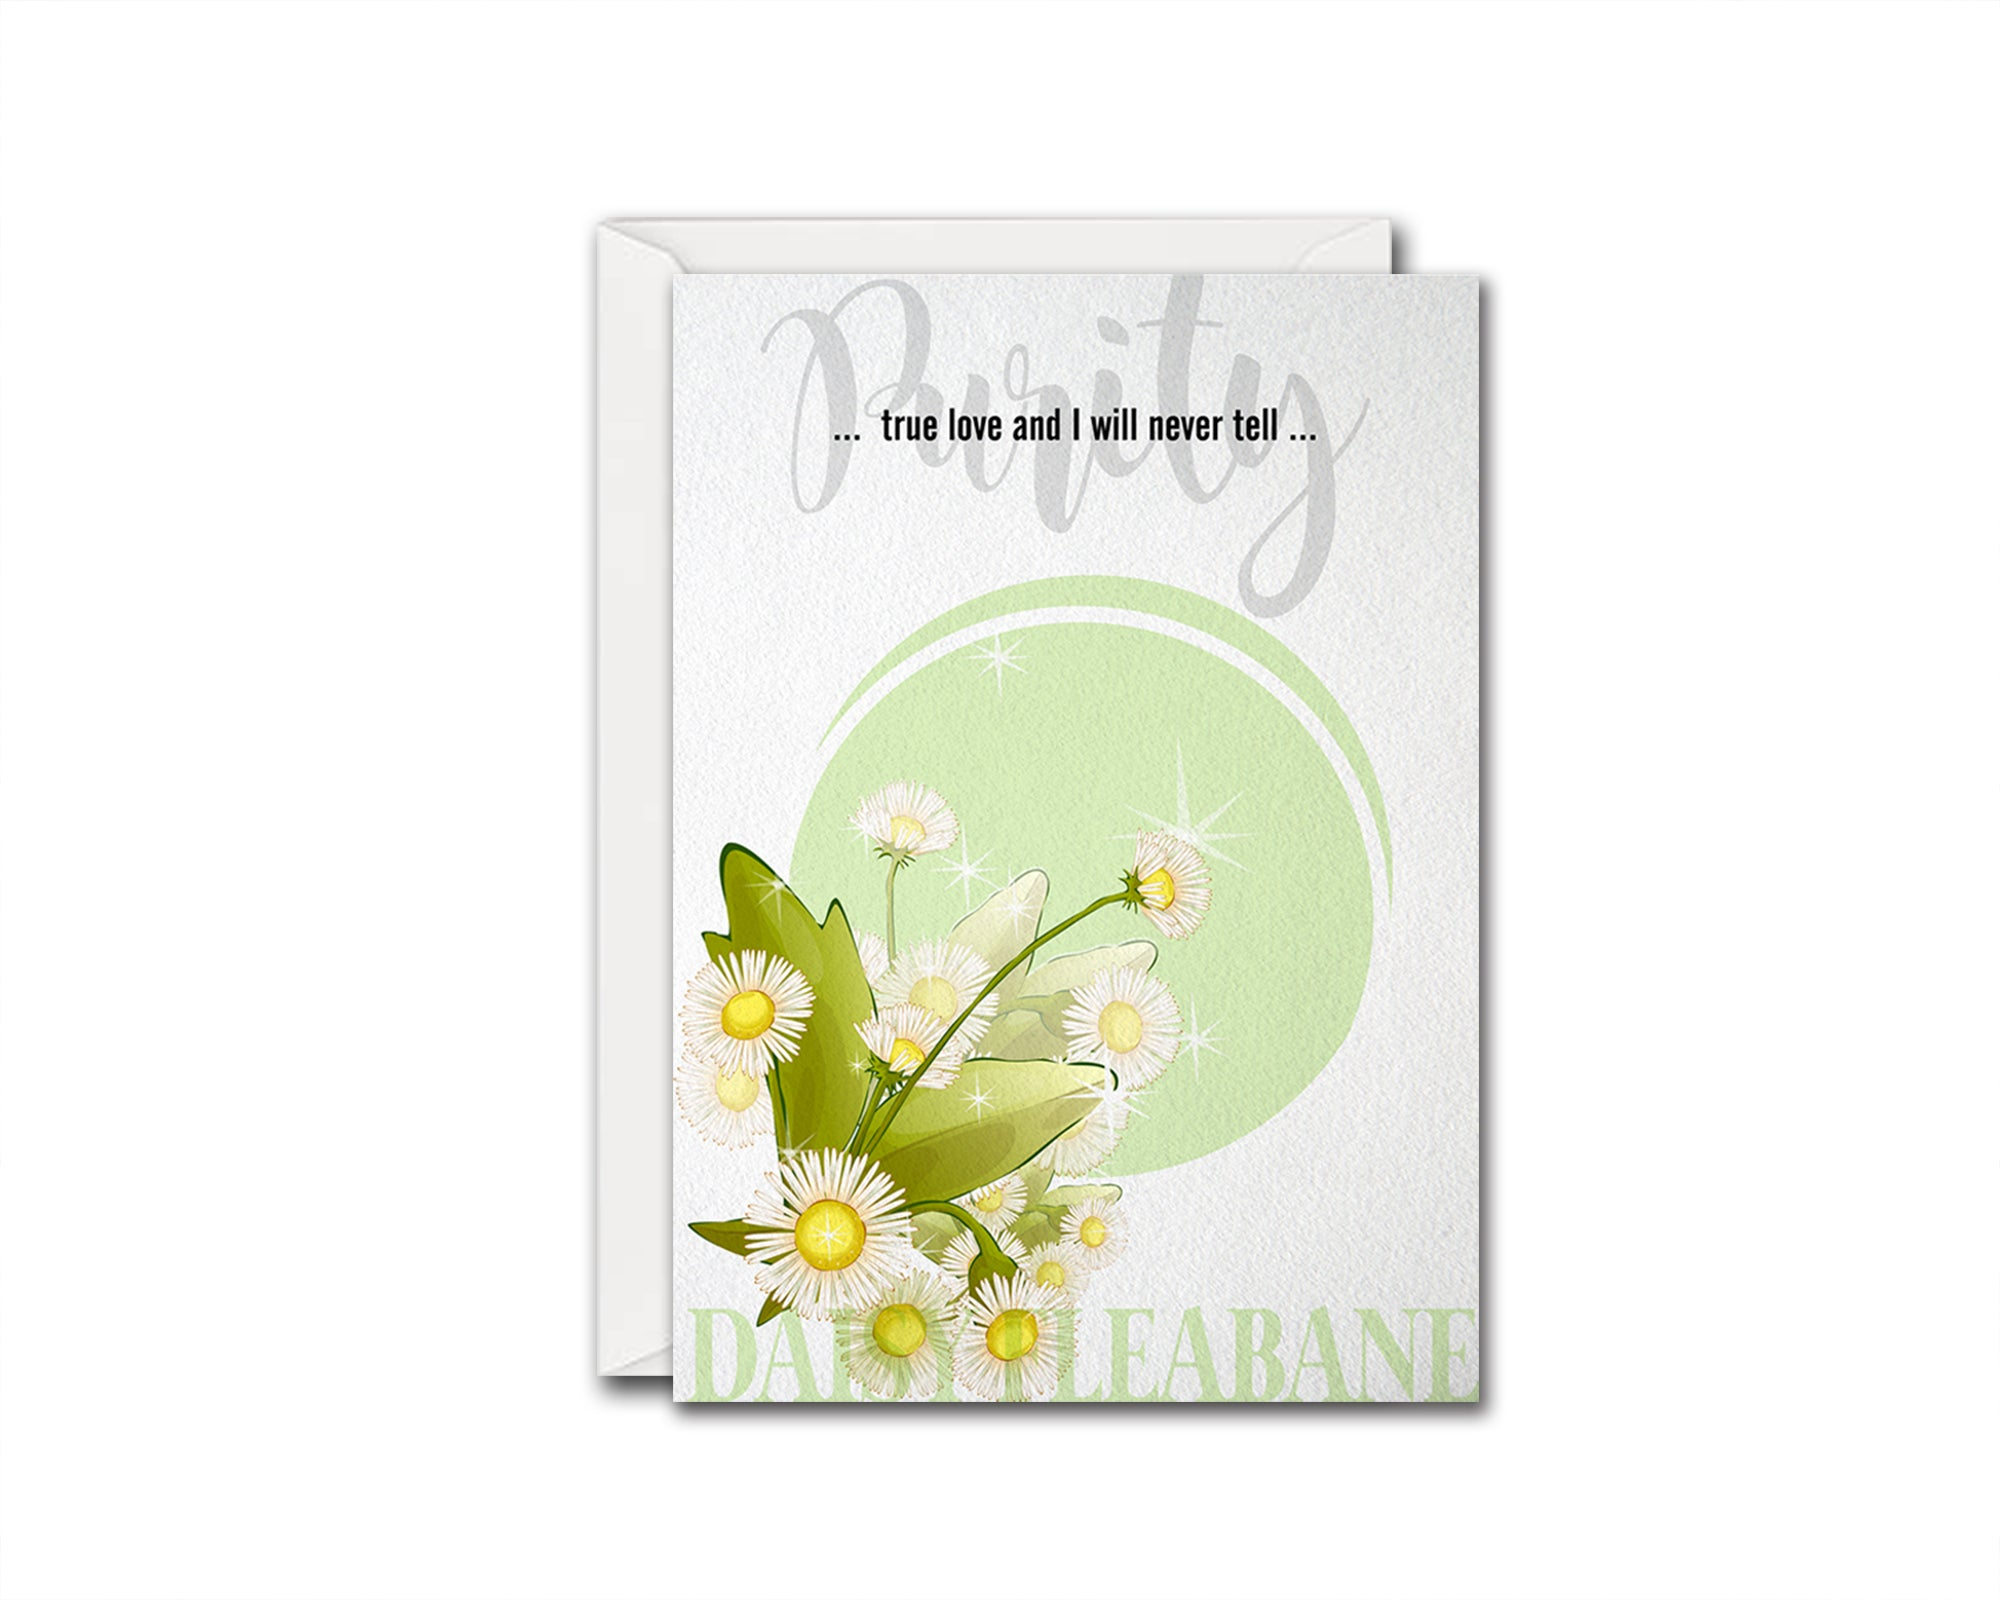 Daisy Fleabane Flower Meanings Symbolism Customized Gift Cards